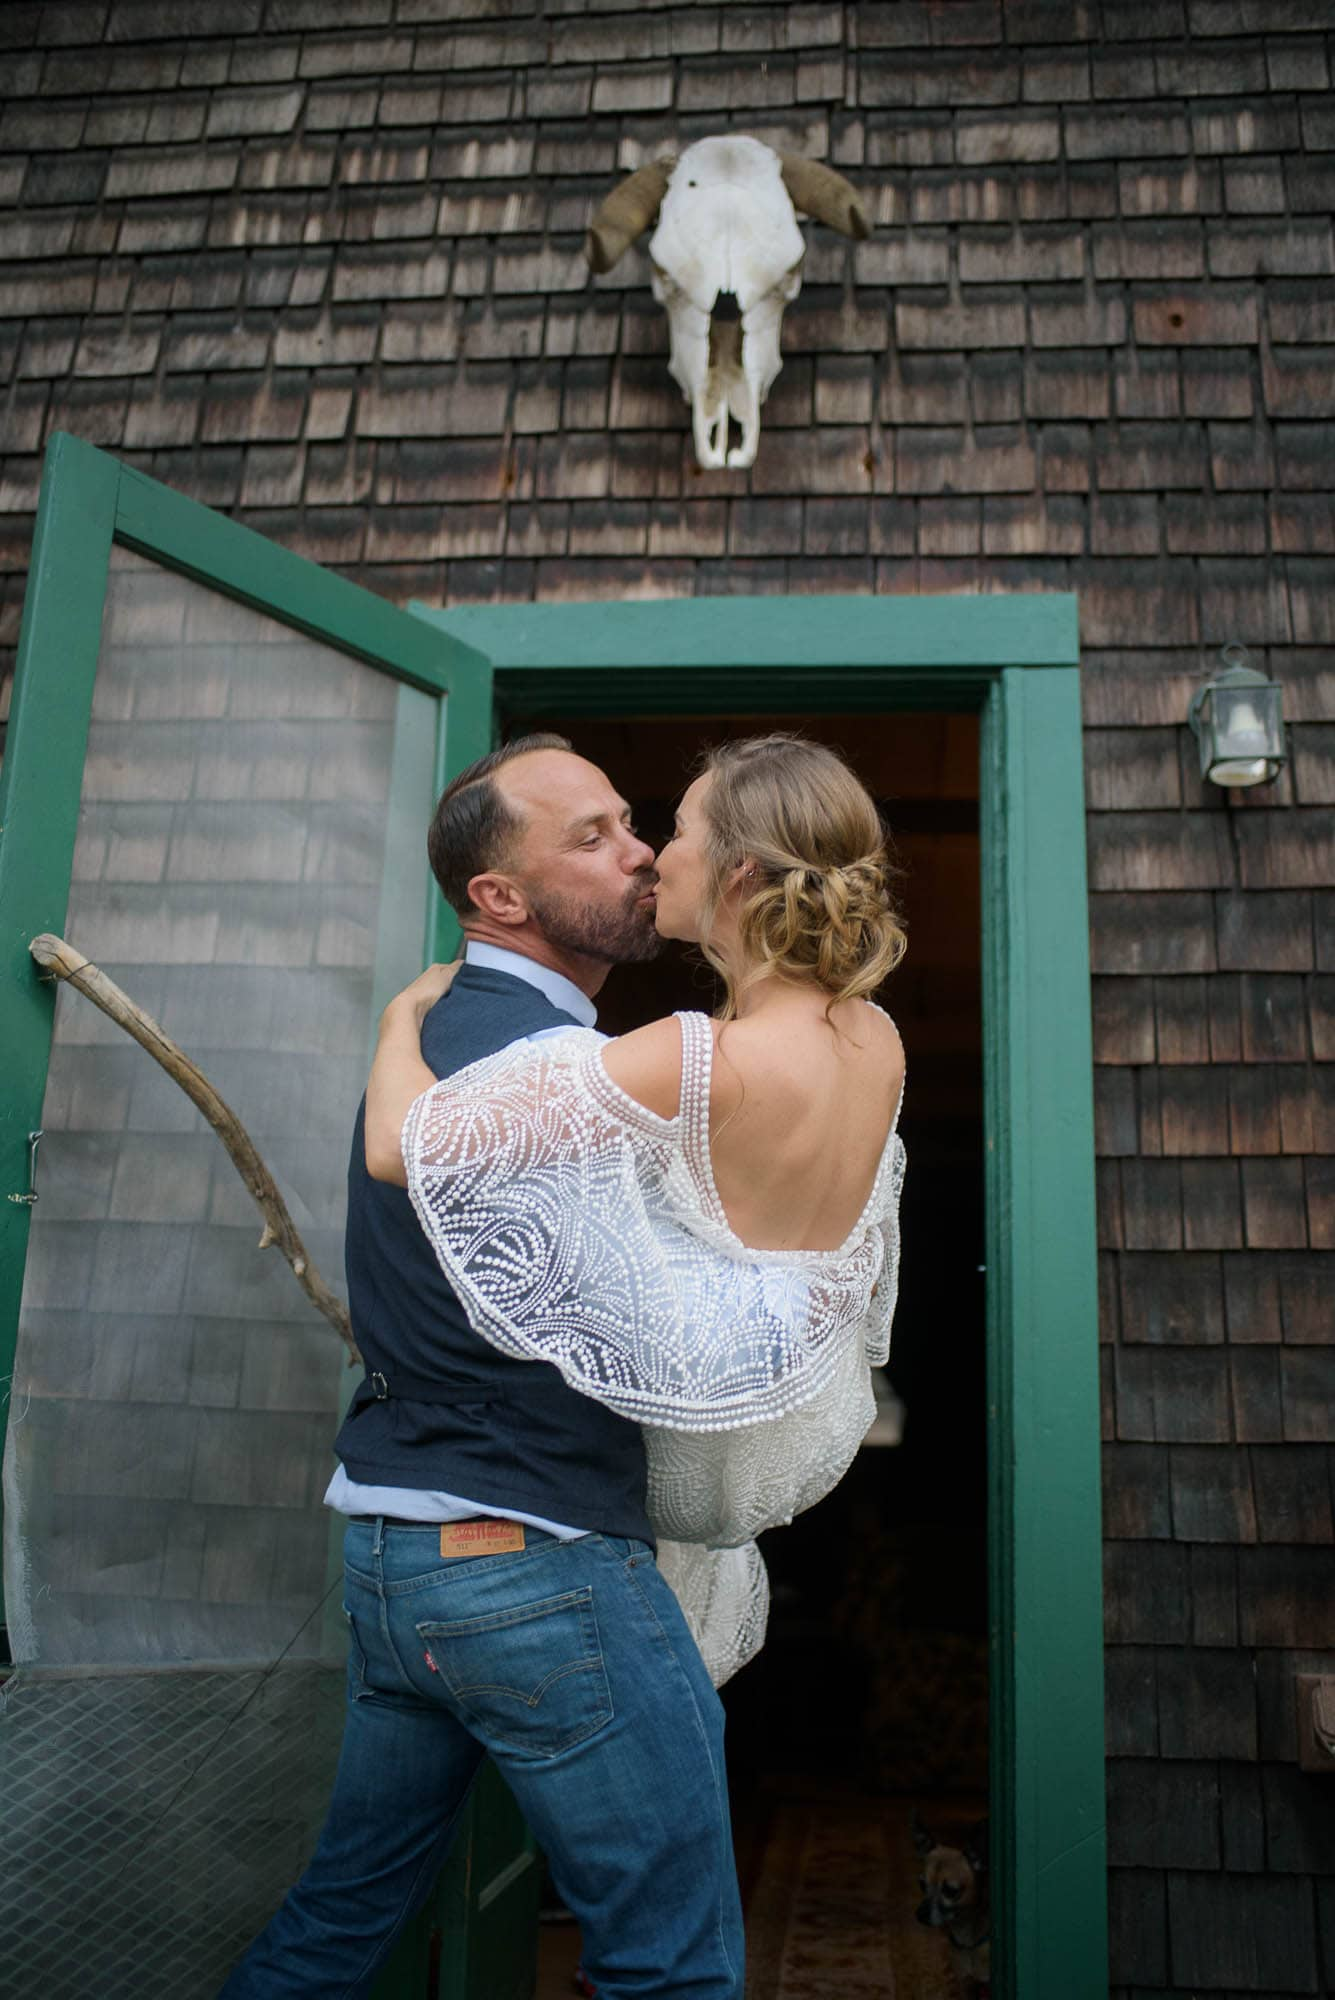 043_Alan_and_Heidi_Big_Bear_Elopement_Holly_Sean